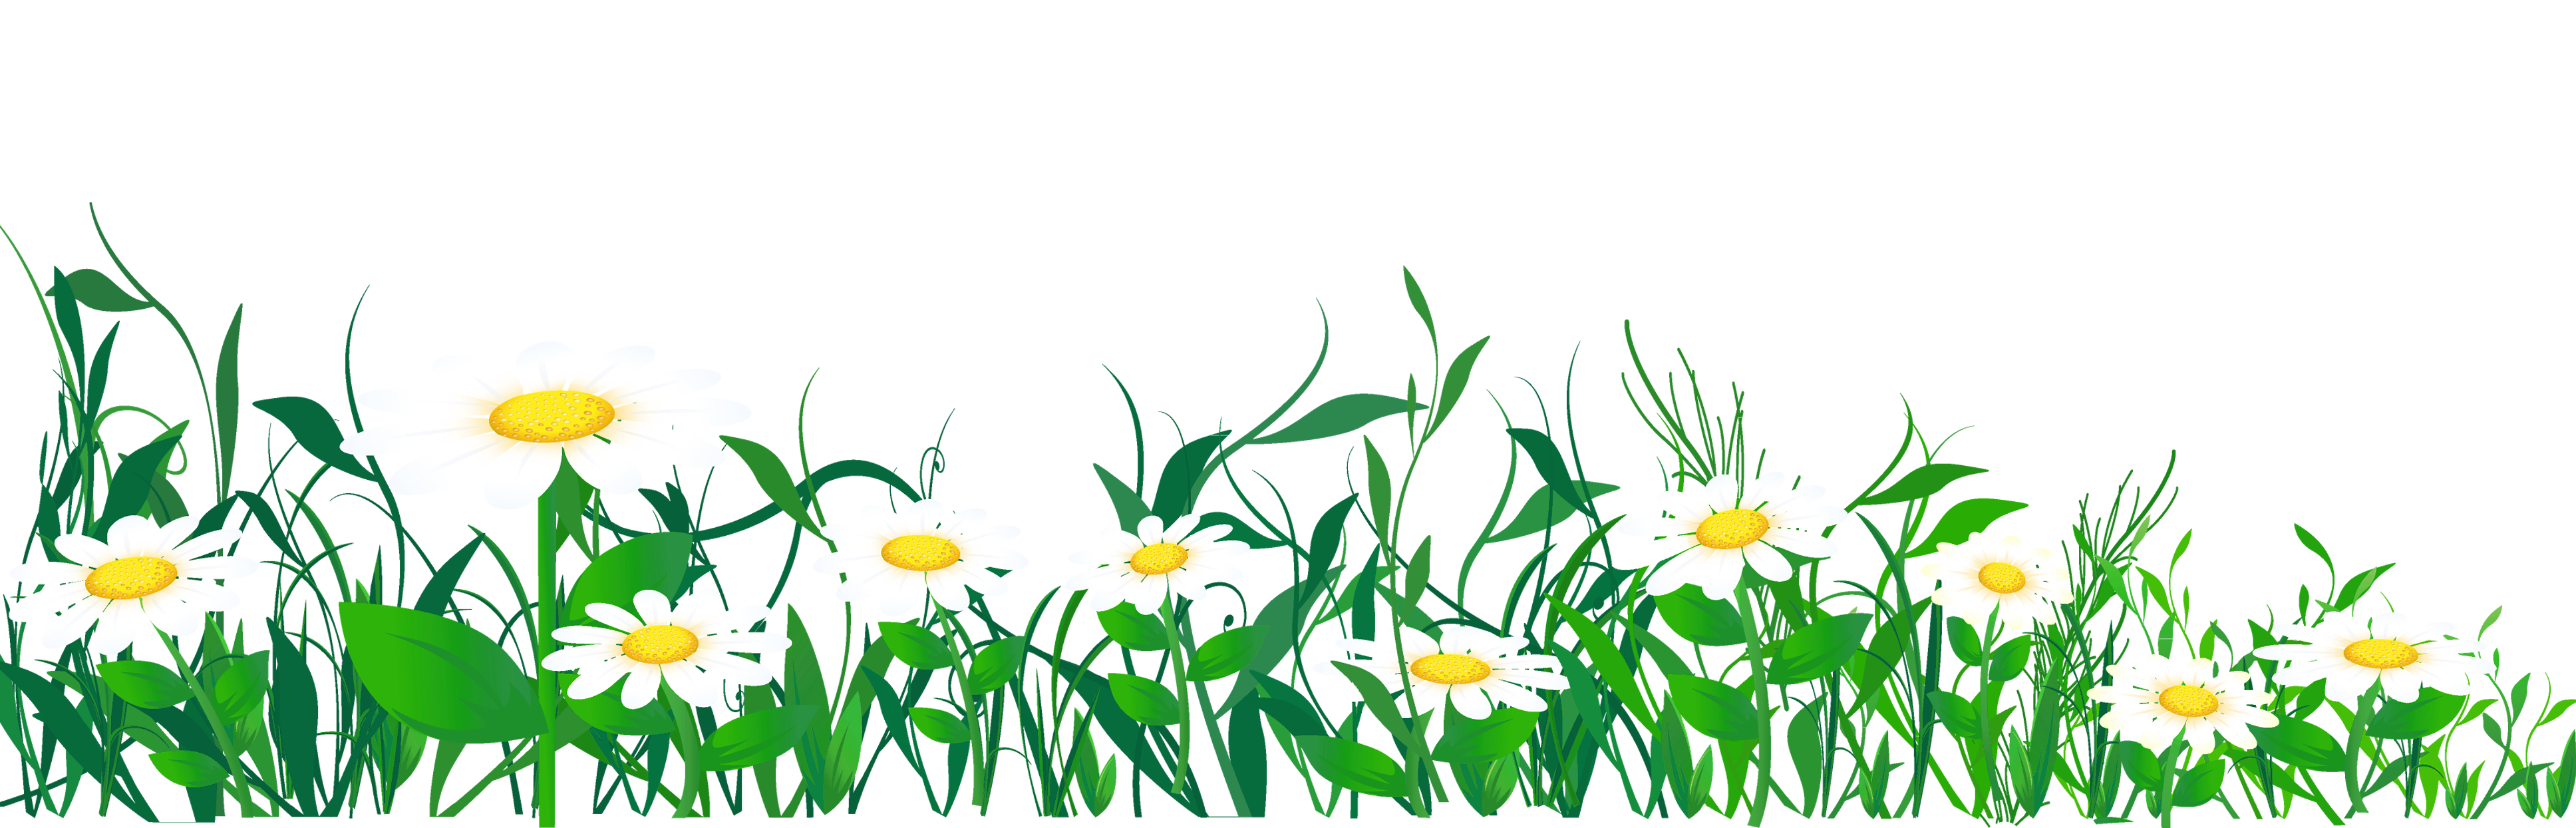 Free transparent cliparts download. Daisy clipart frame svg library